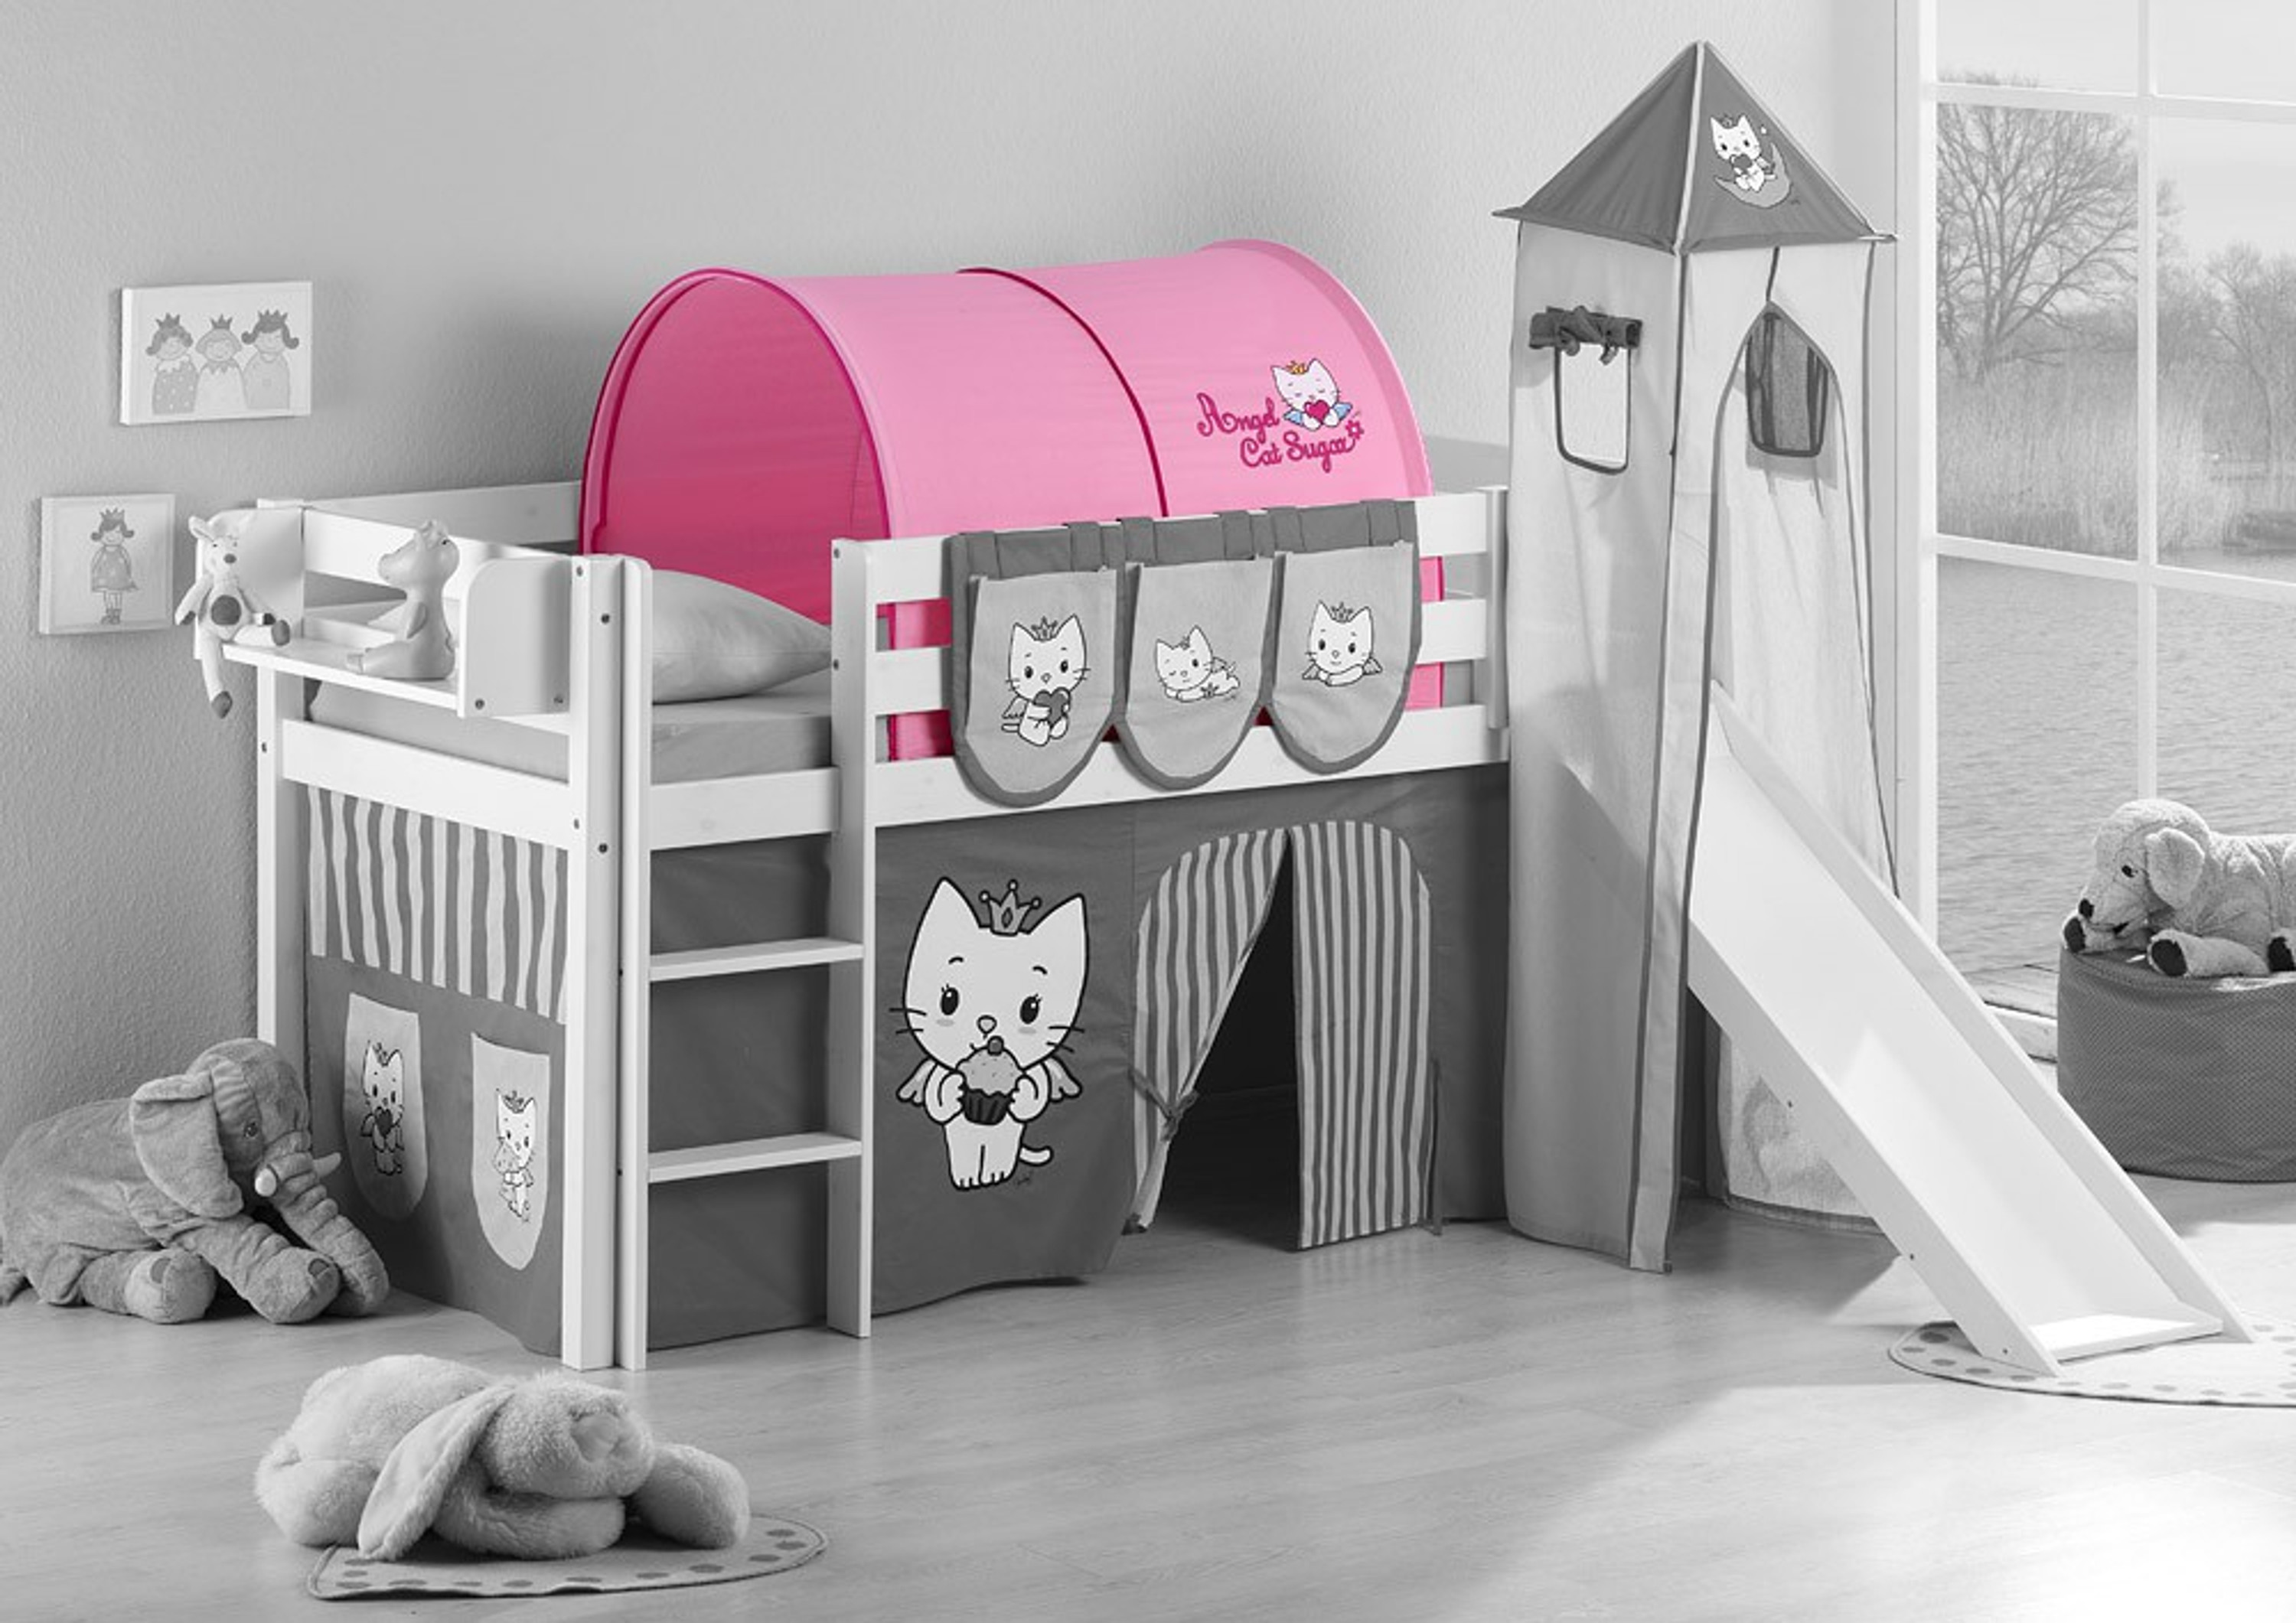 tunnel angel cat sugar f r hochbett spielbett und etagenbett m bel baby kinderzimmer zubeh r. Black Bedroom Furniture Sets. Home Design Ideas